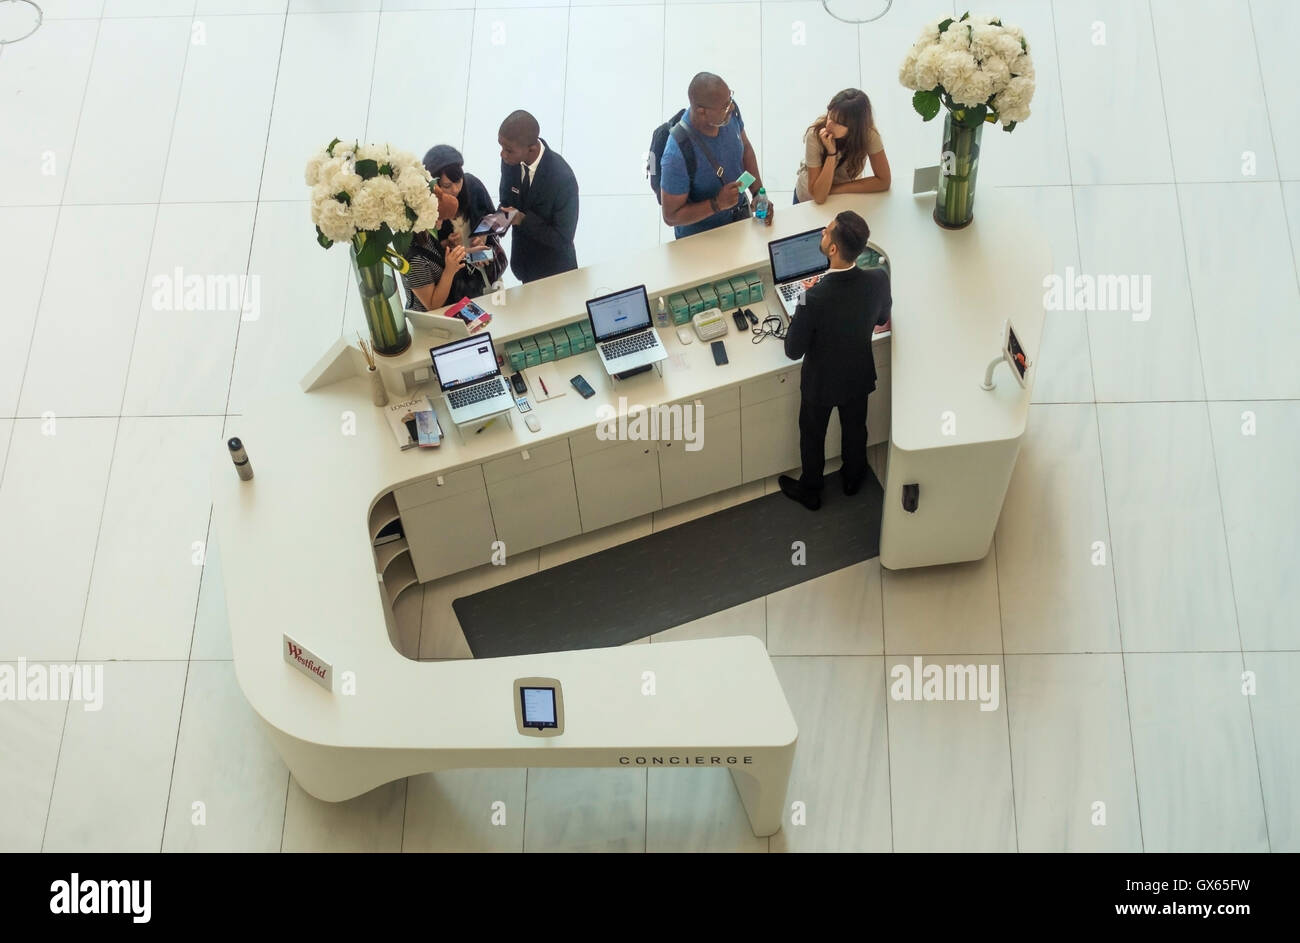 home design ideas best 25 reception counter design ideas only on the concierge desk in the oculus of the world trade center transportation hub in new york